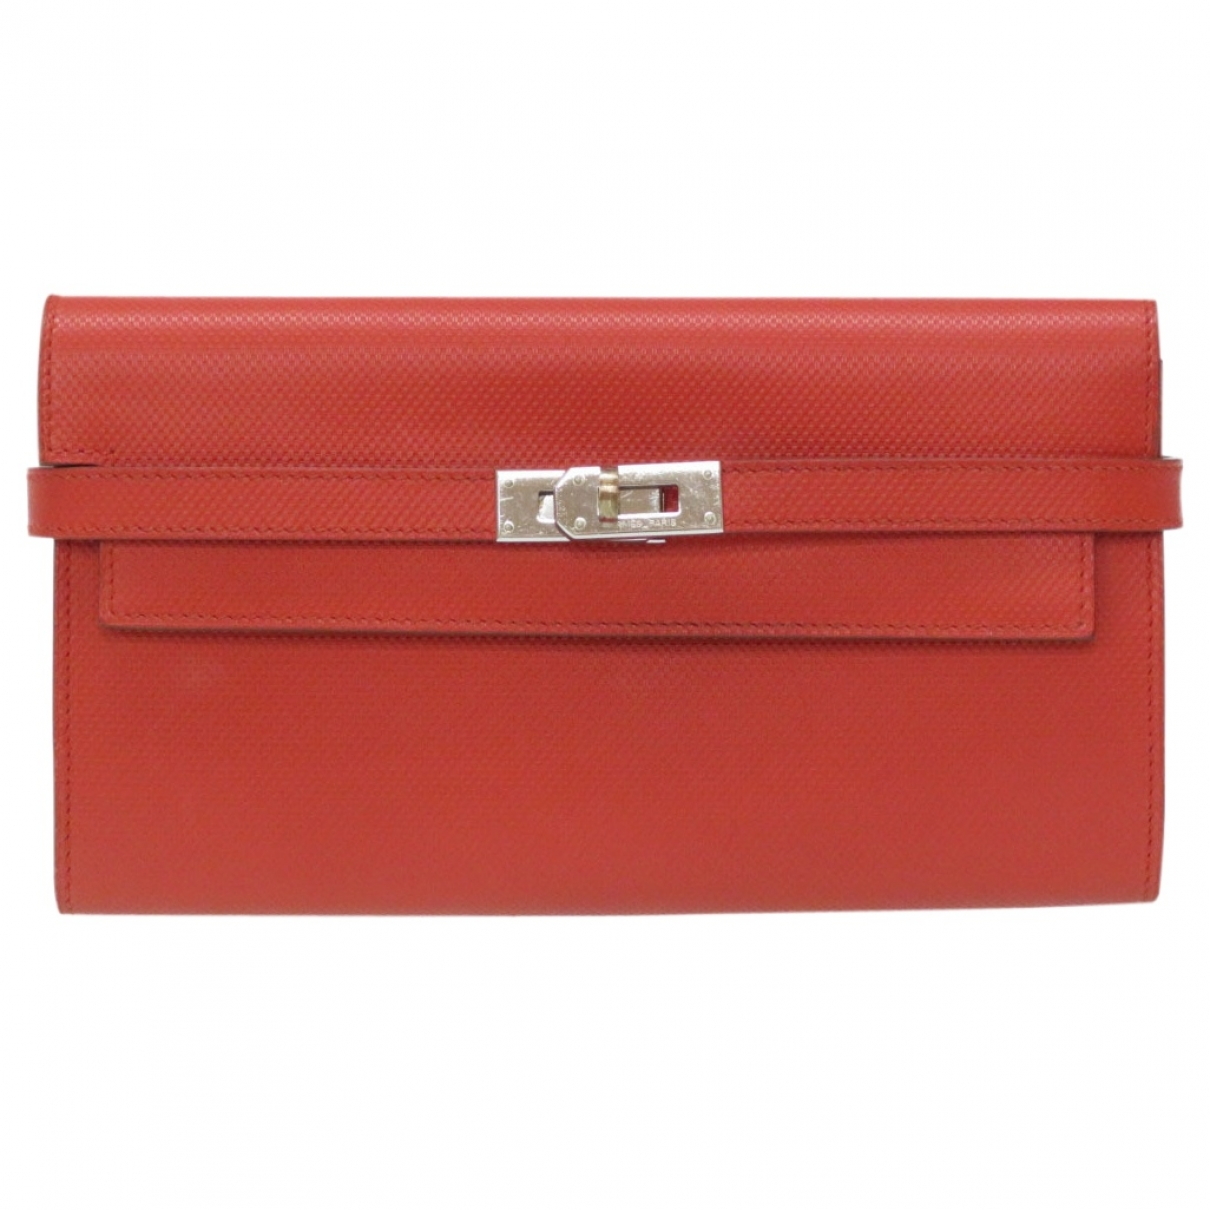 Hermès Kelly Red Leather wallet for Women \N